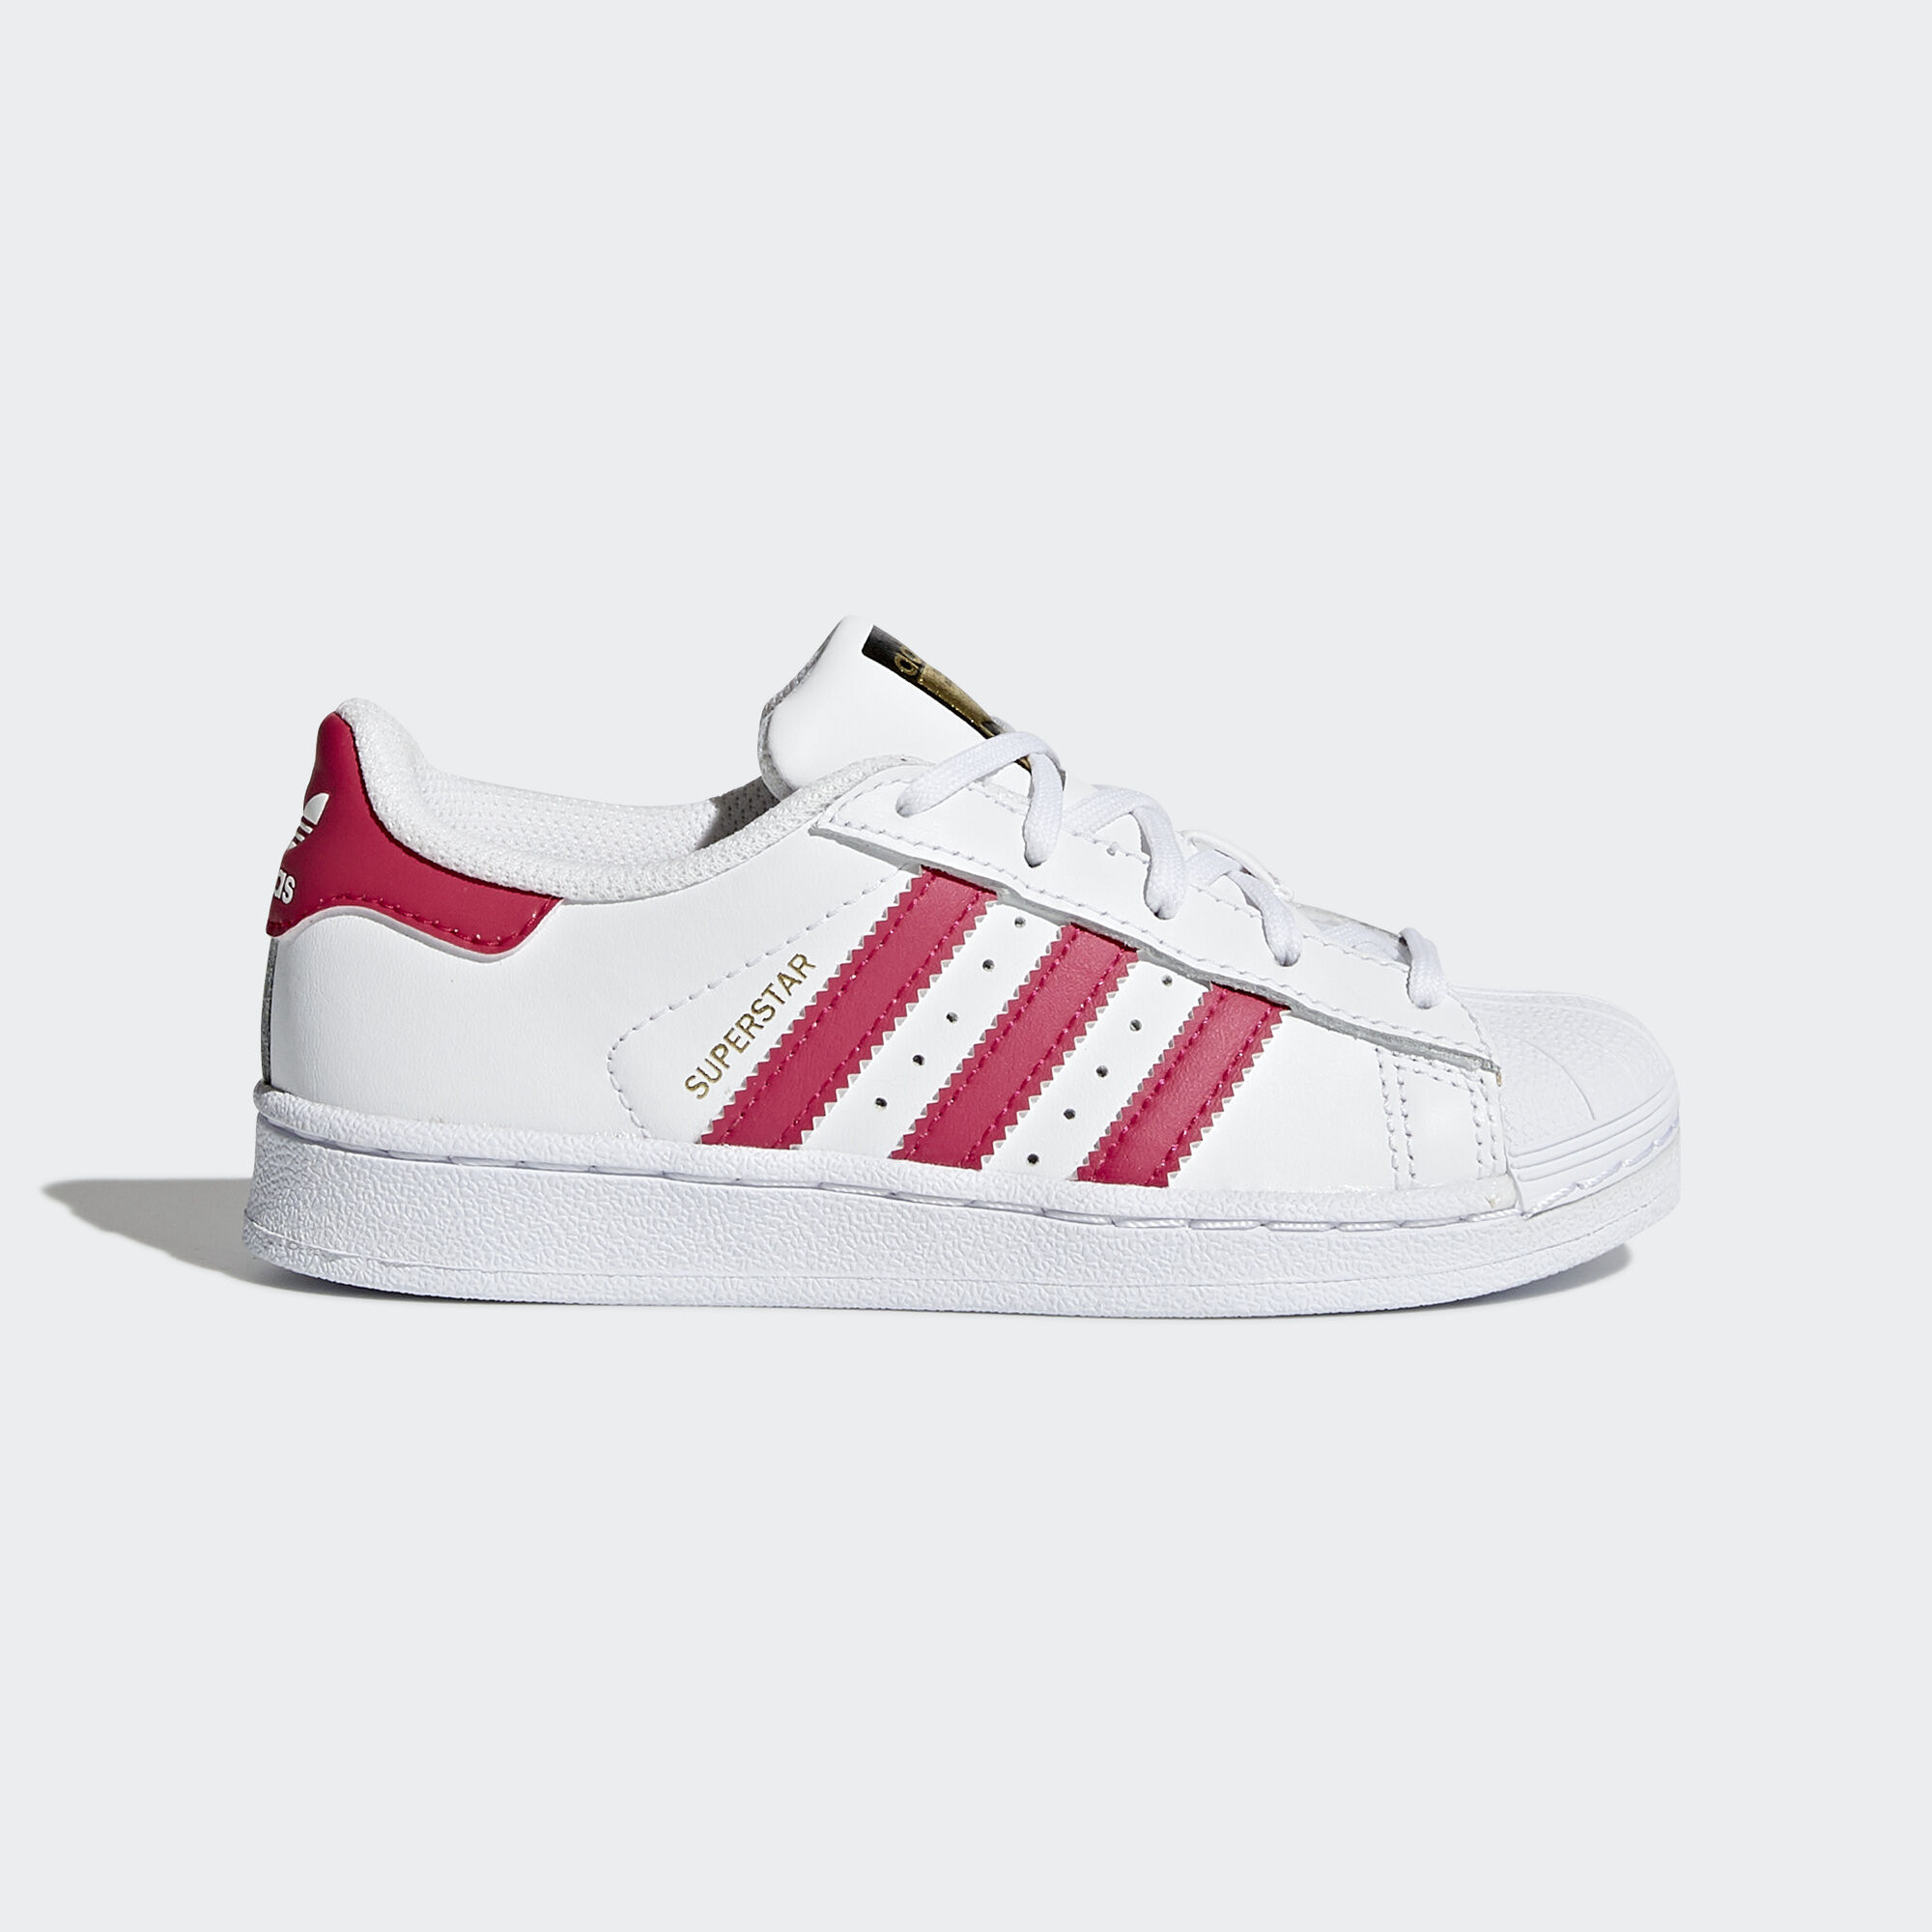 Adidas adidas Originals Superstar Foundation White & Red Sneakers